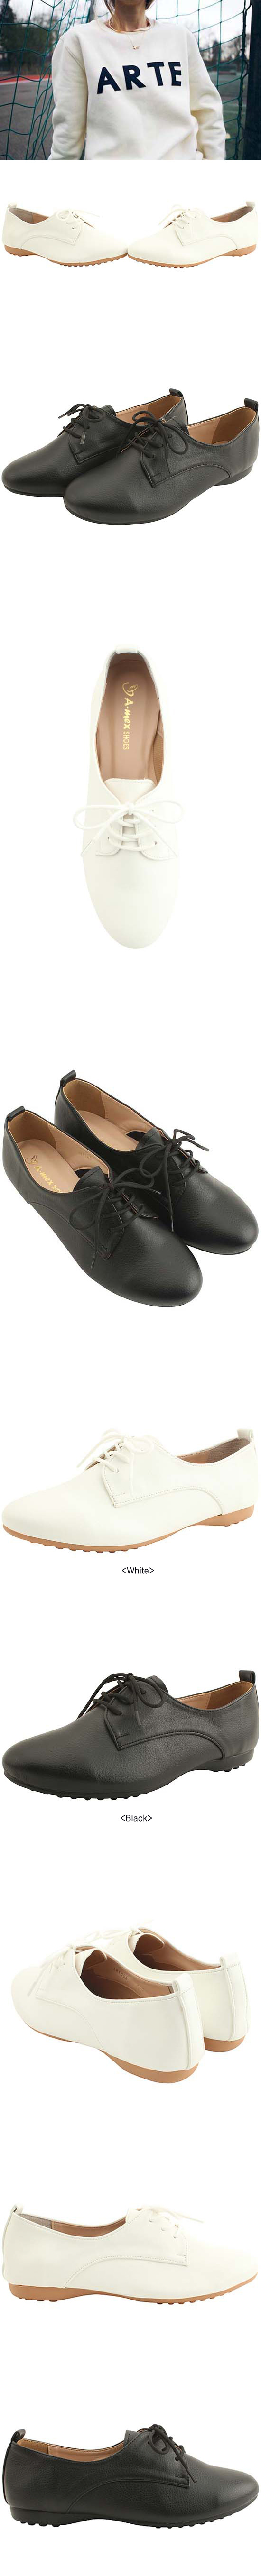 Lace-up simple loafer shoes black